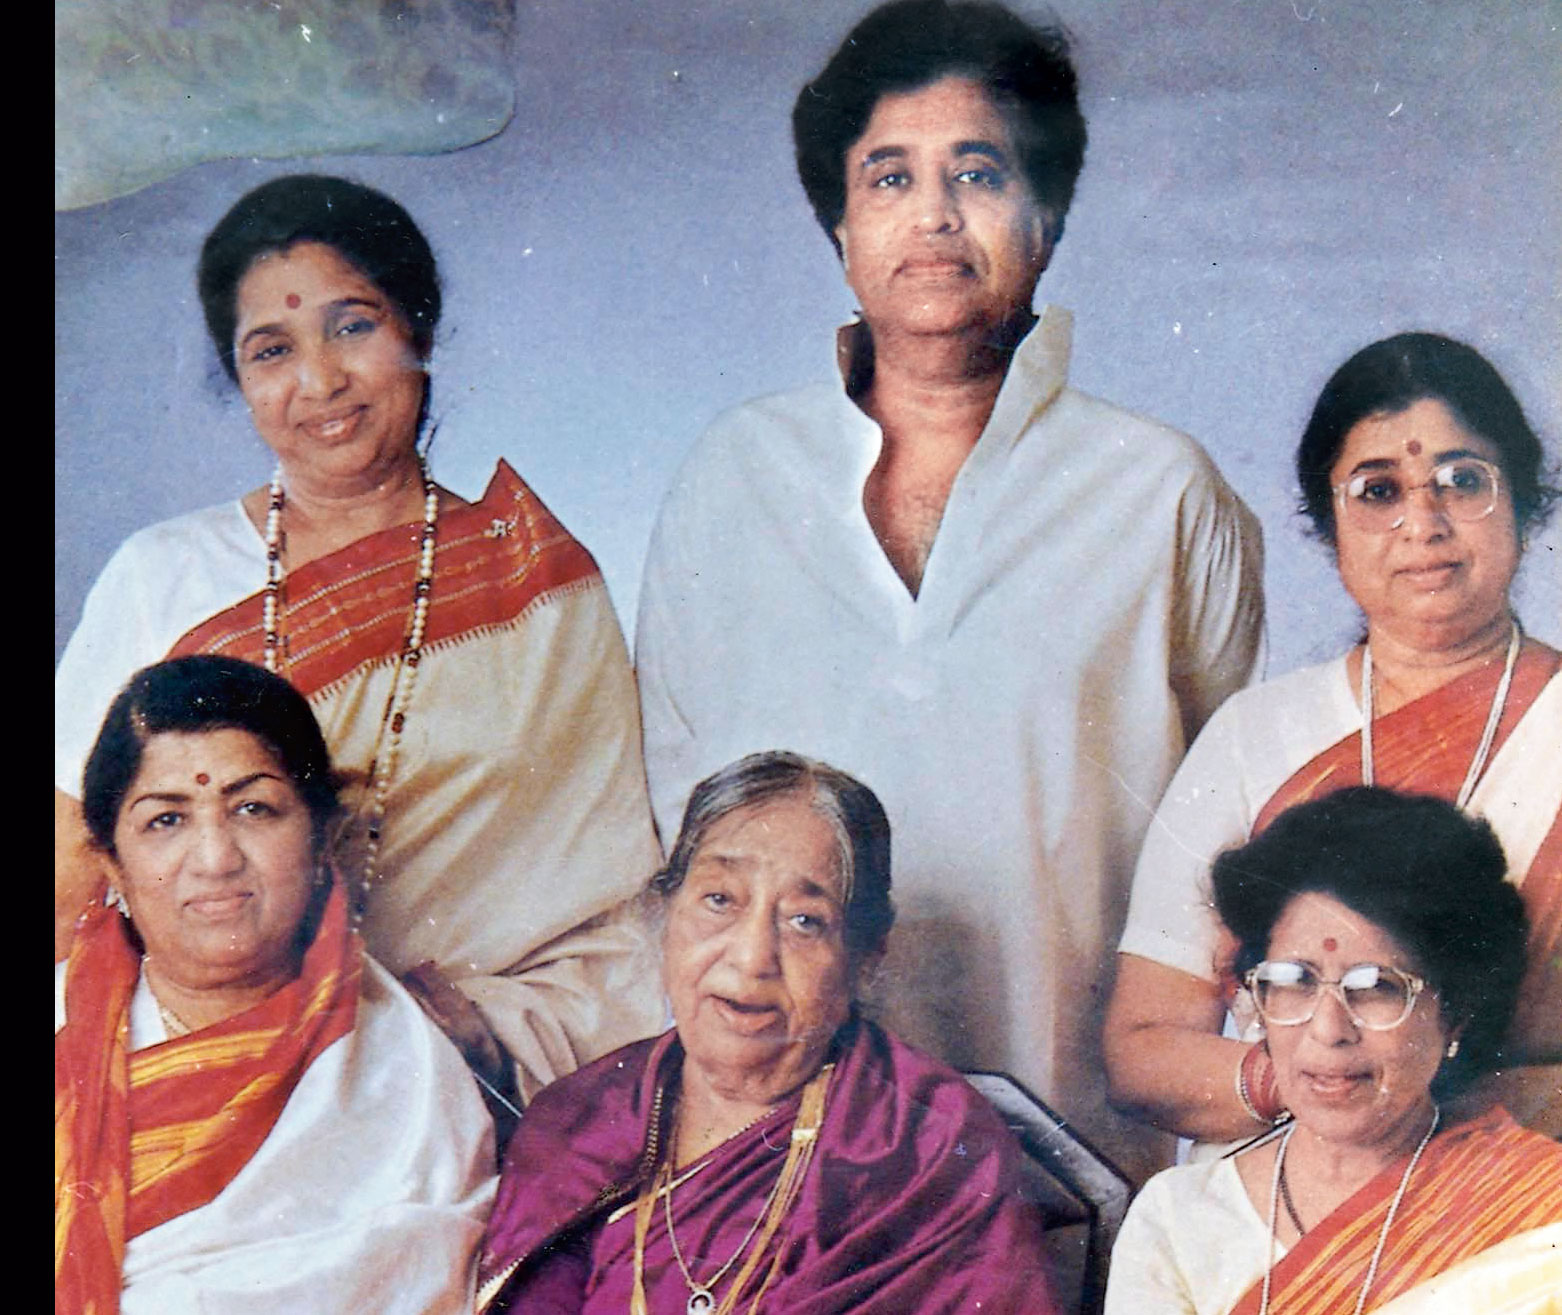 Lata Mangeshkar with her mother and siblings